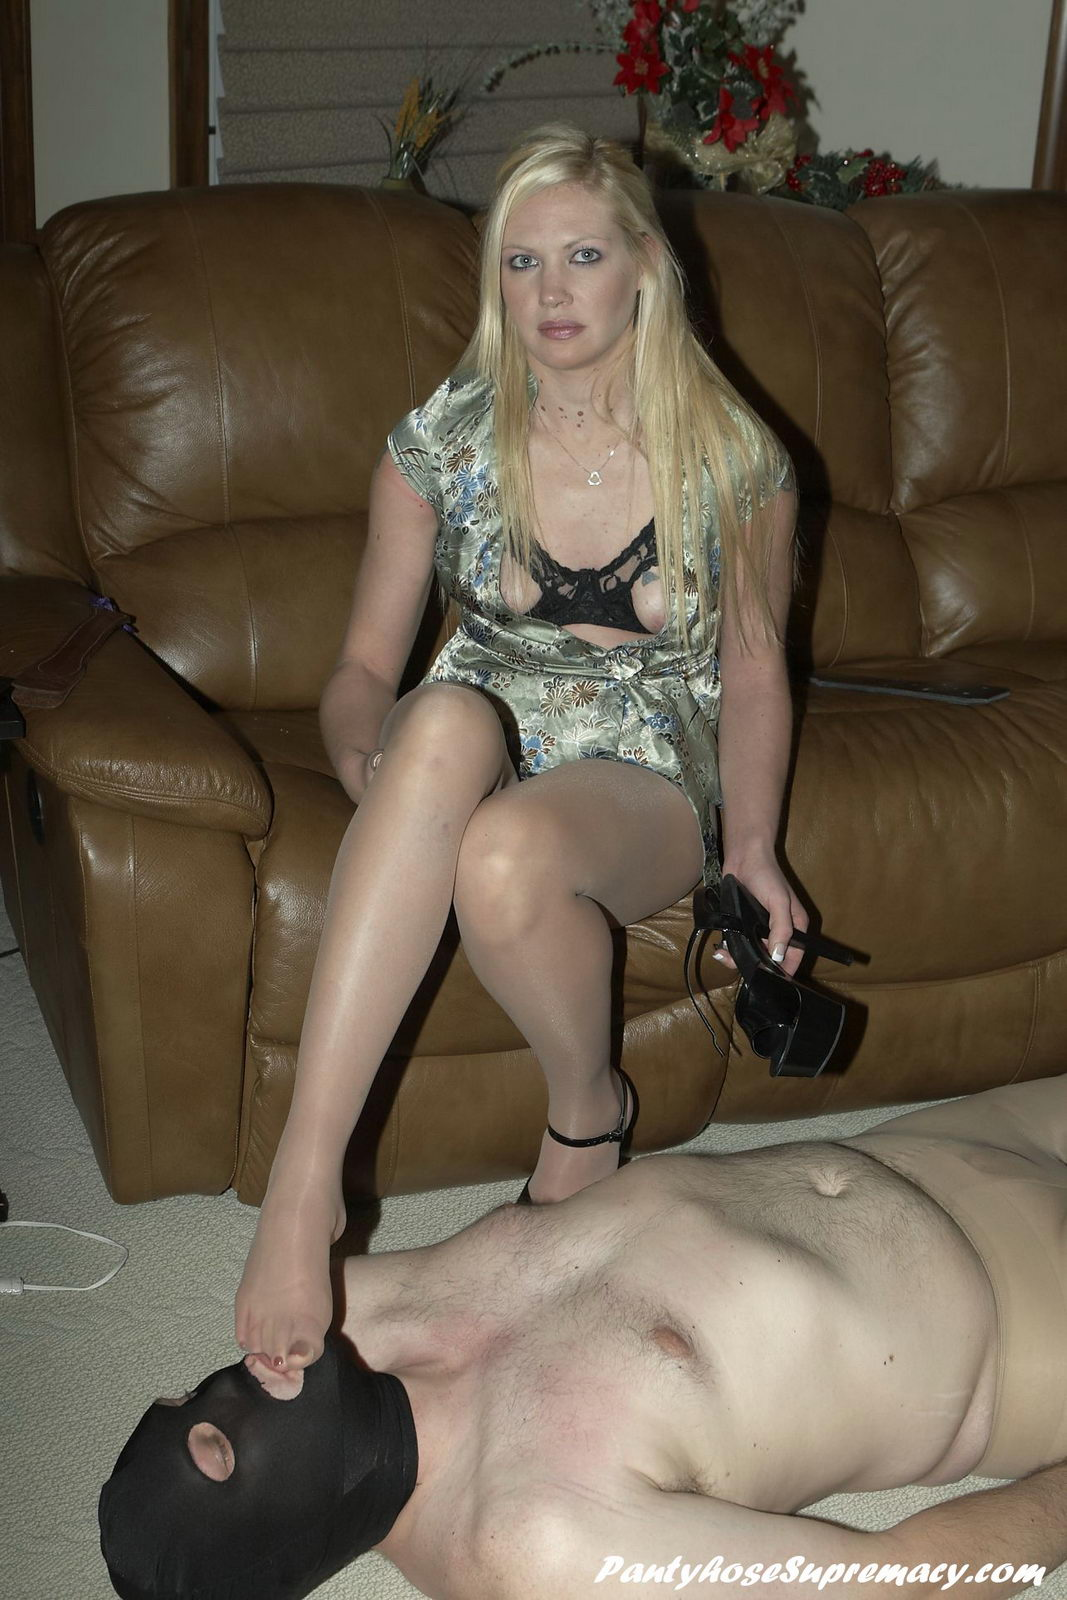 Dominatrix Ariel blond stocking supremacy